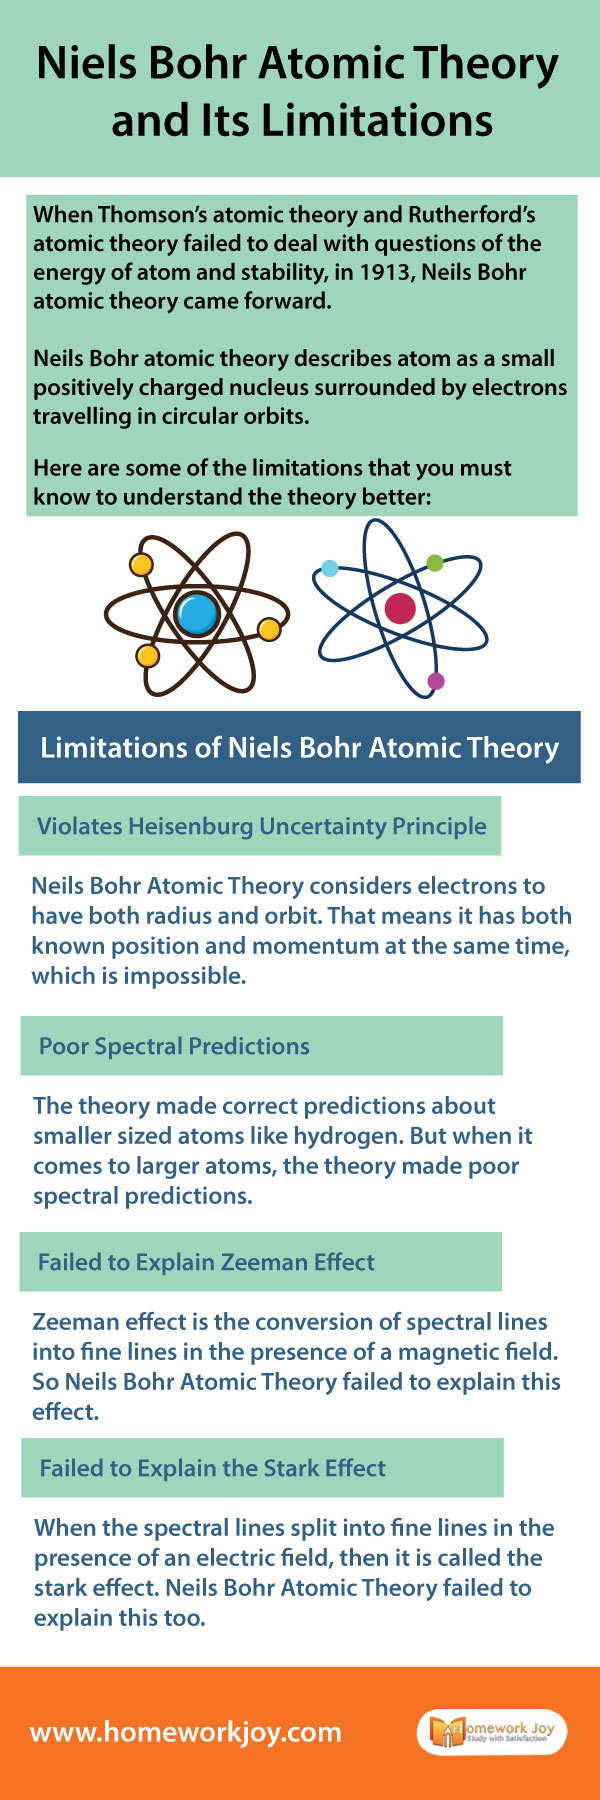 Niels-Bohr-Atomic-Theory-and-Its-Limitations